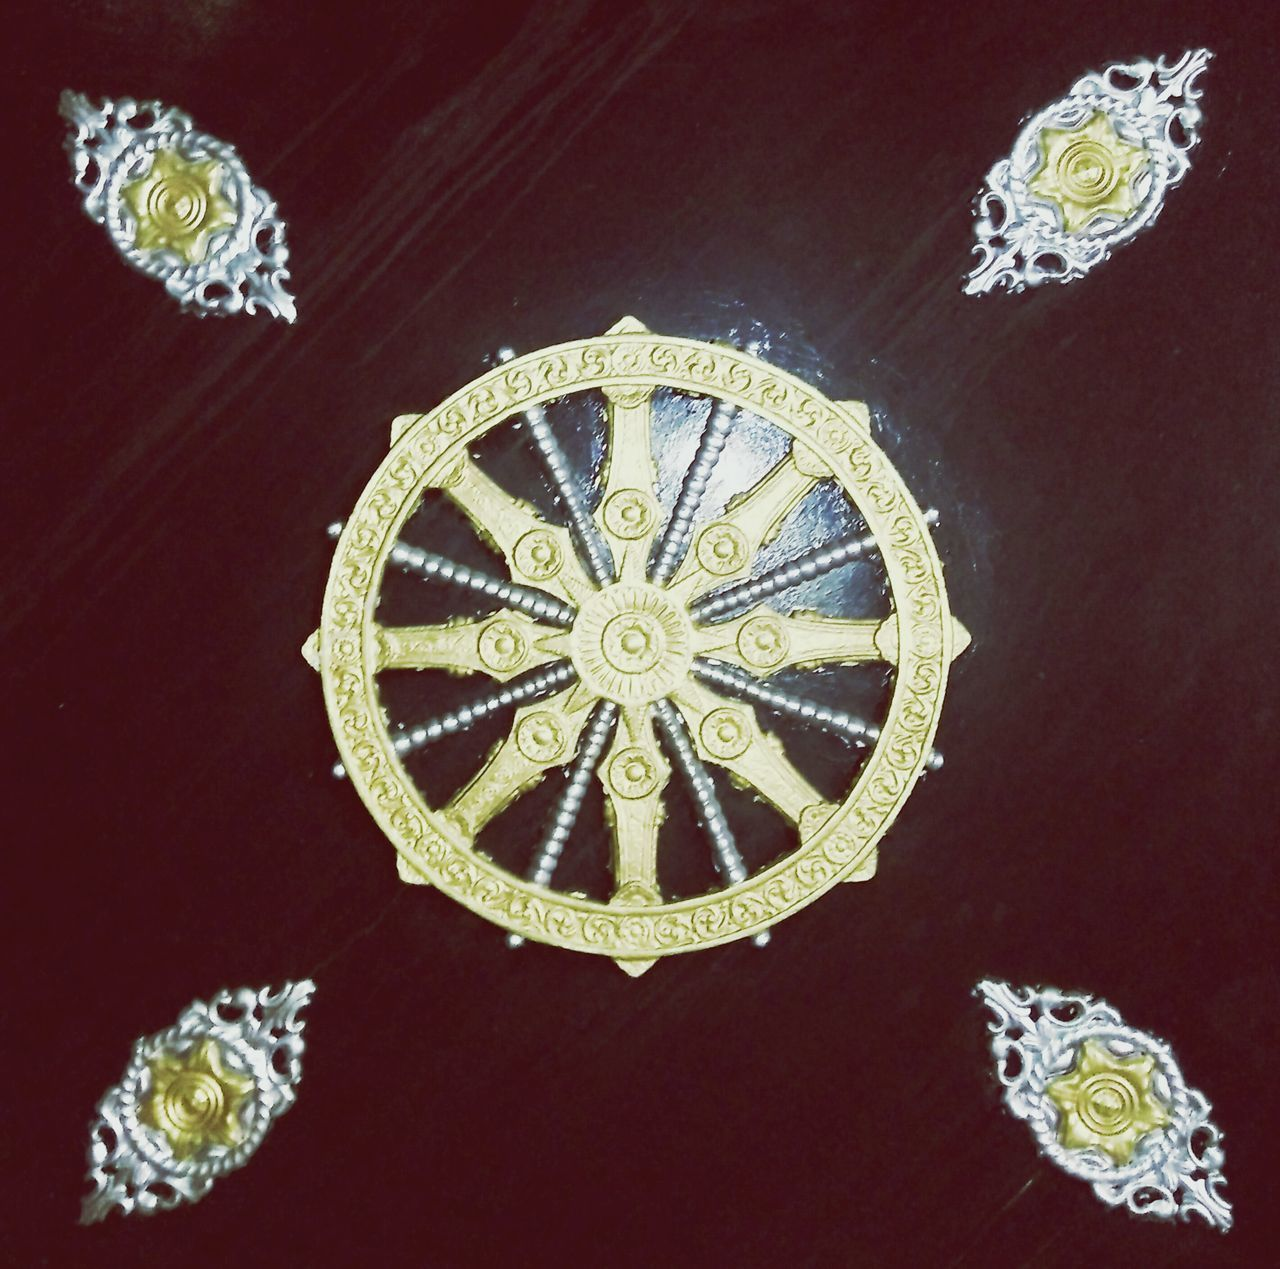 design, ornate, luxury, wealth, indoors, close-up, no people, gold colored, royalty, day